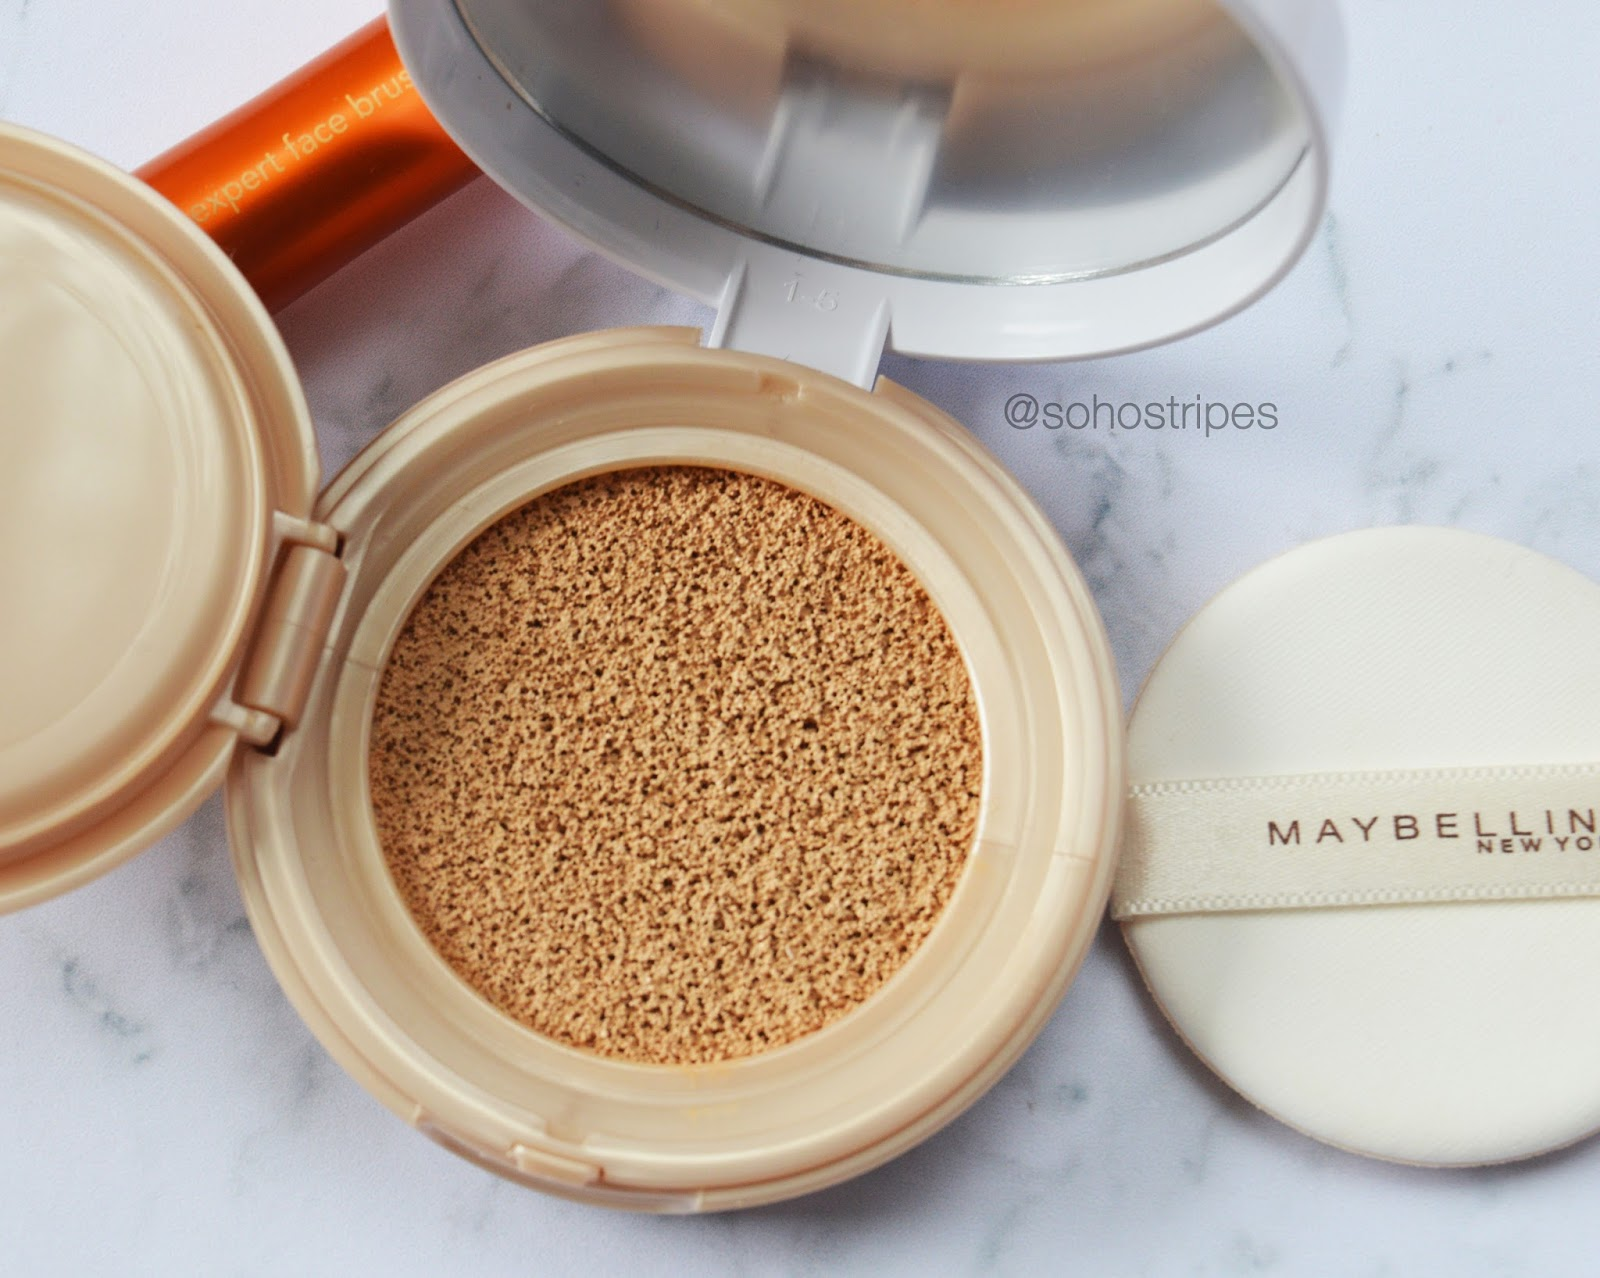 Maybelline Dream Cushion Foundation Natural Ivory 01